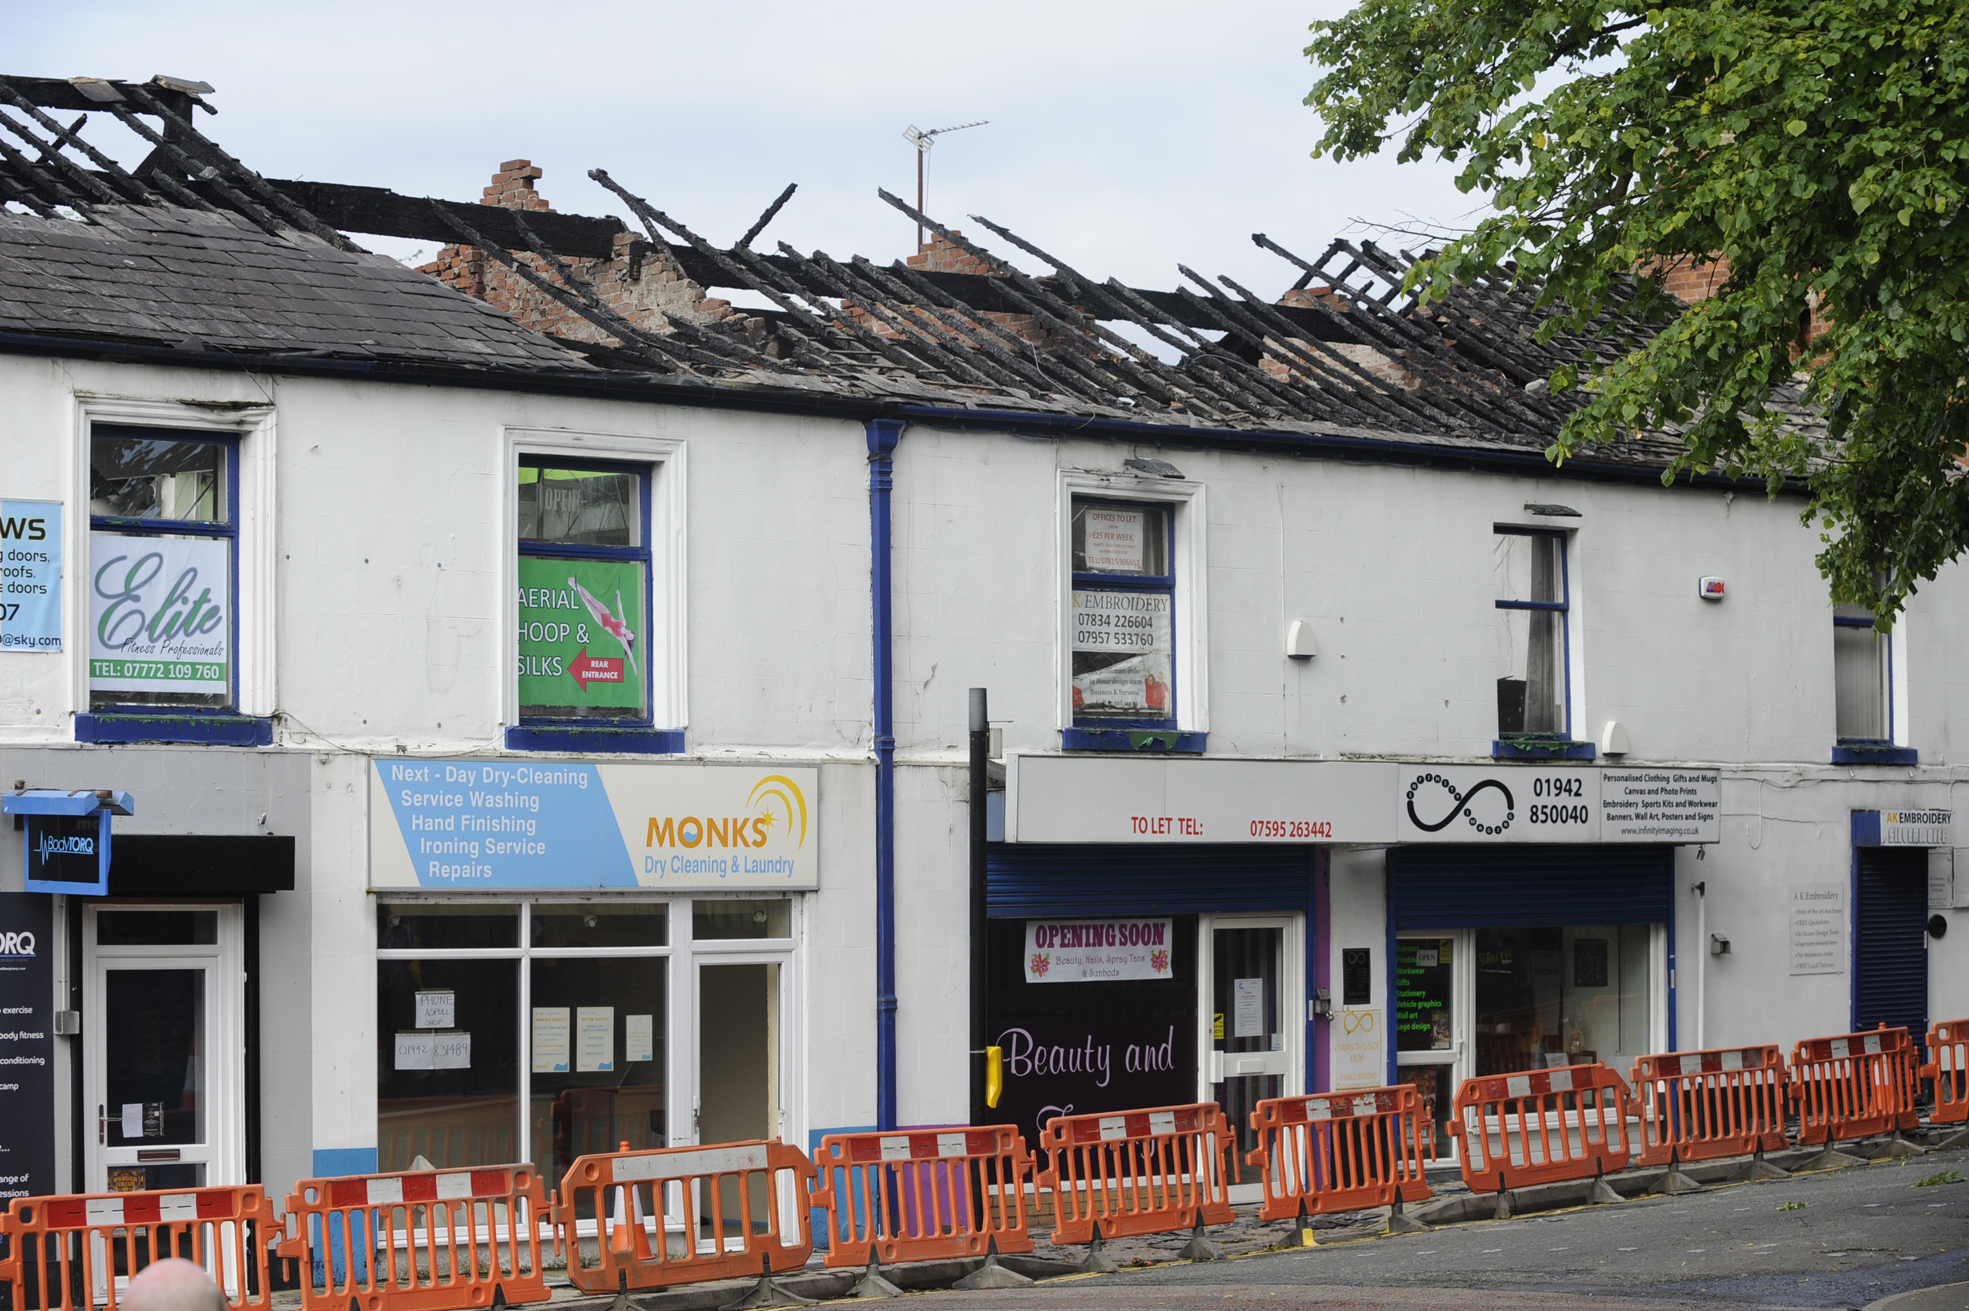 UPDATED: Fire destroys whole row of shops in Westhoughton